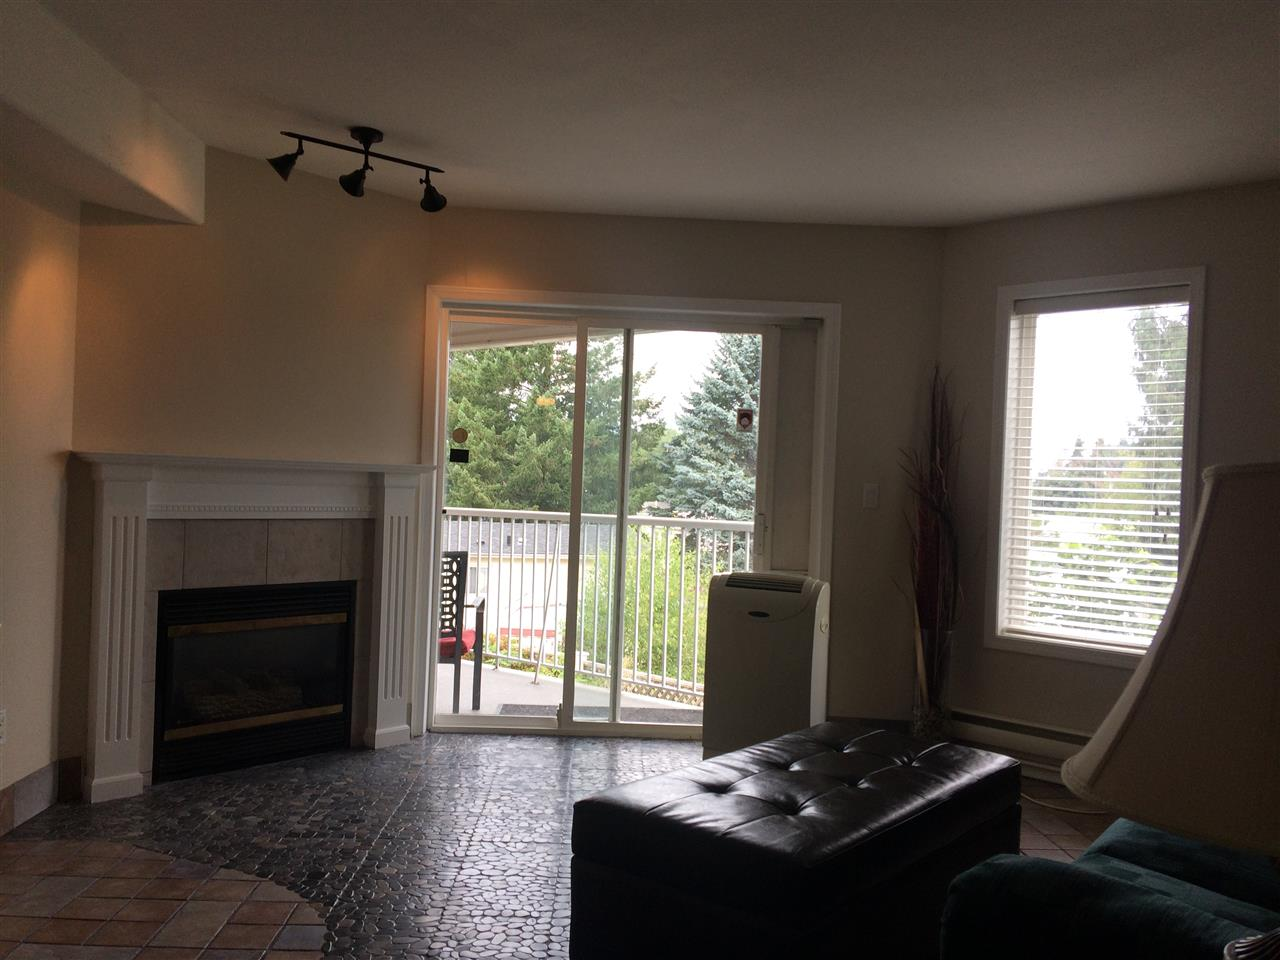 Condo Apartment at 208 5765 VEDDER ROAD, Unit 208, Sardis, British Columbia. Image 4